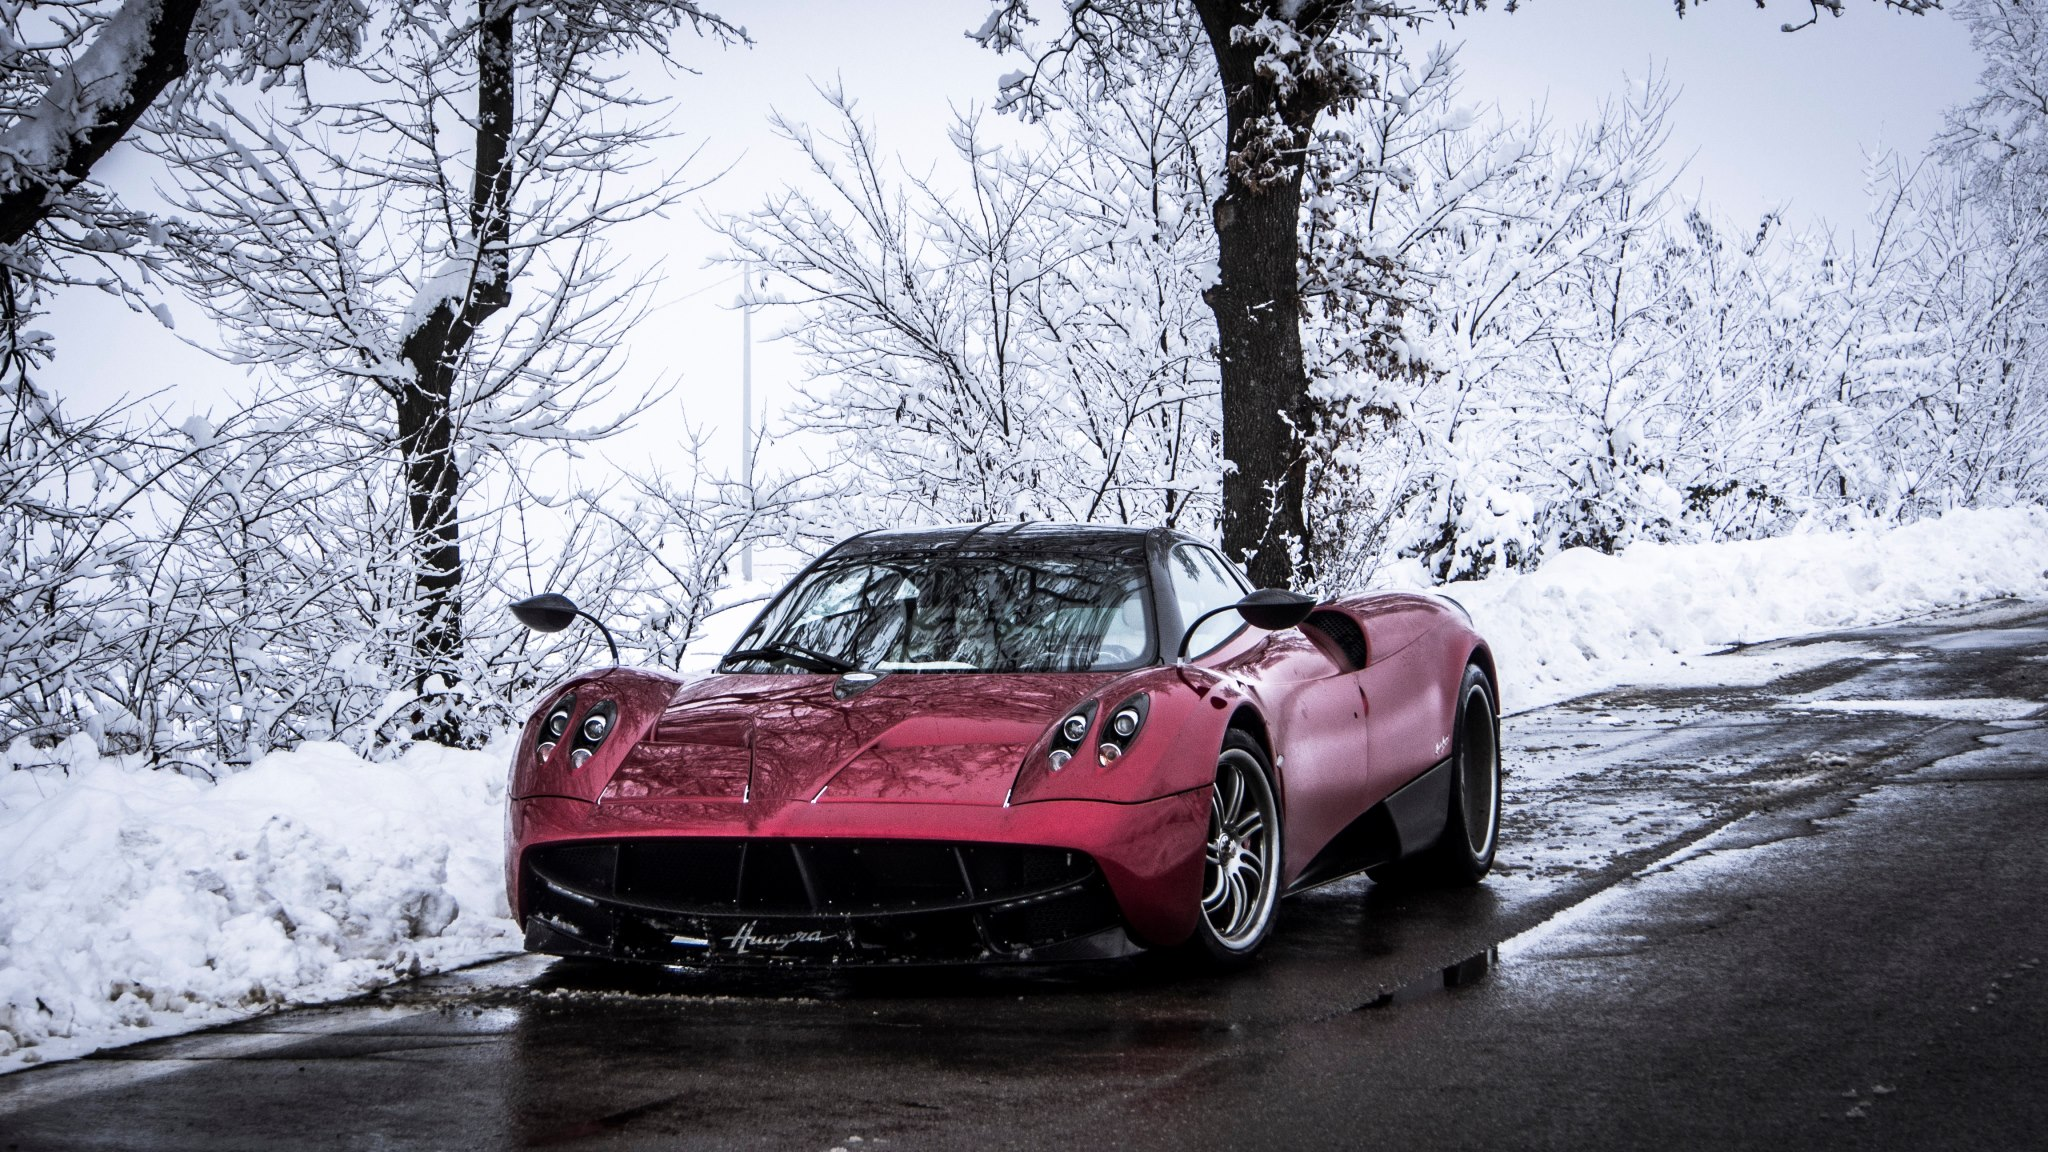 Pagani Huayra Full HD Wallpaper and Background Image ...